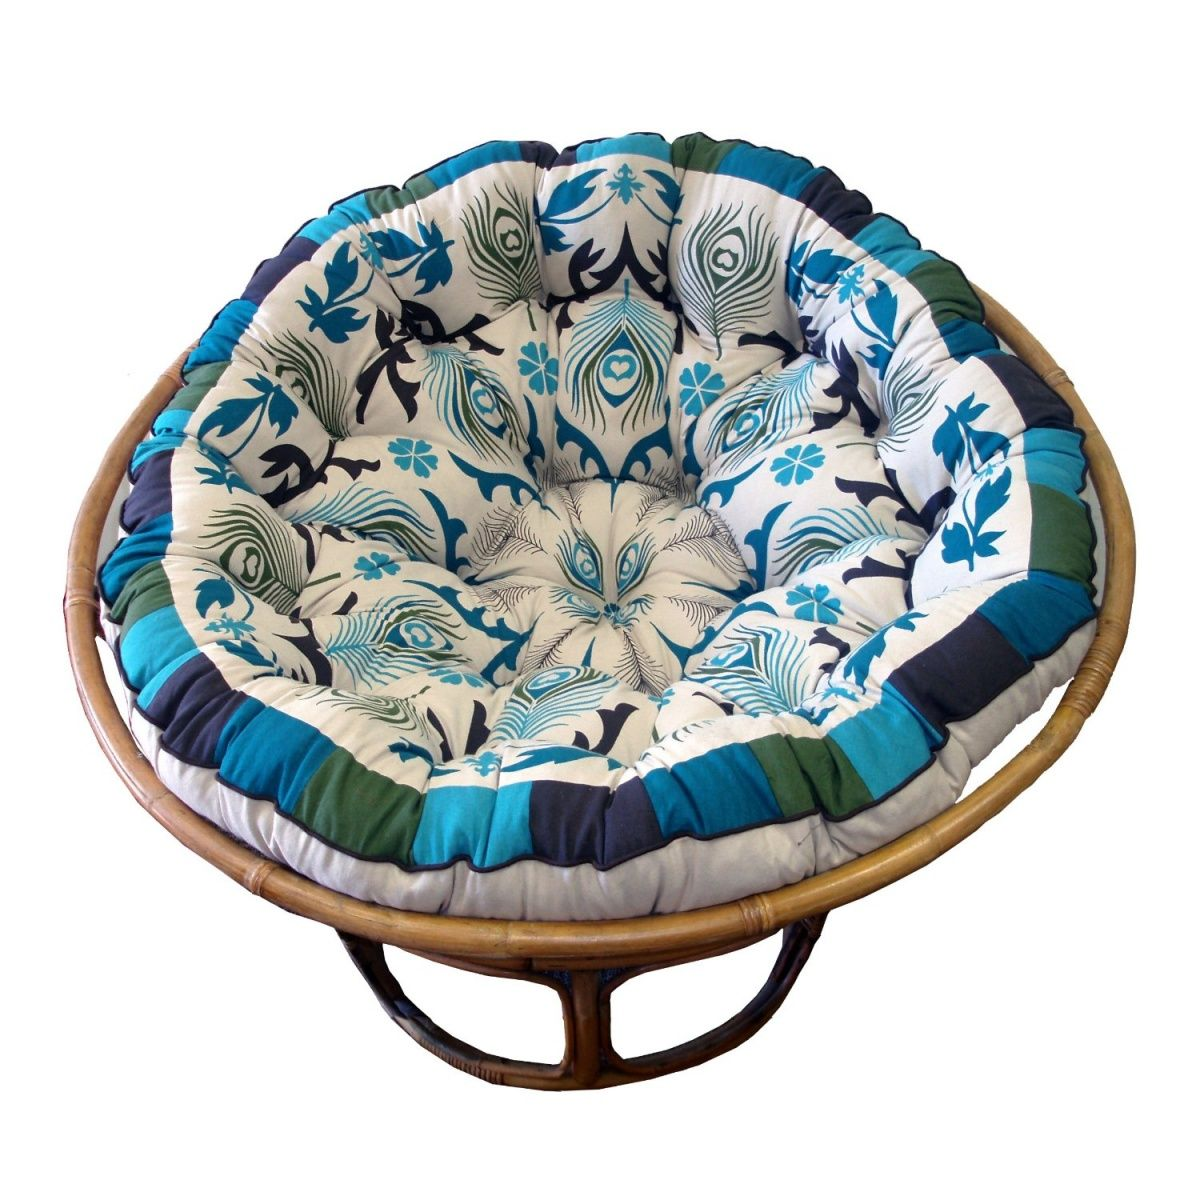 Cotton Craft Papasan Pea Blue Overstuffed Chair Cushion Sink Into Our Super Comfortable Really Thick And Oversized Pure